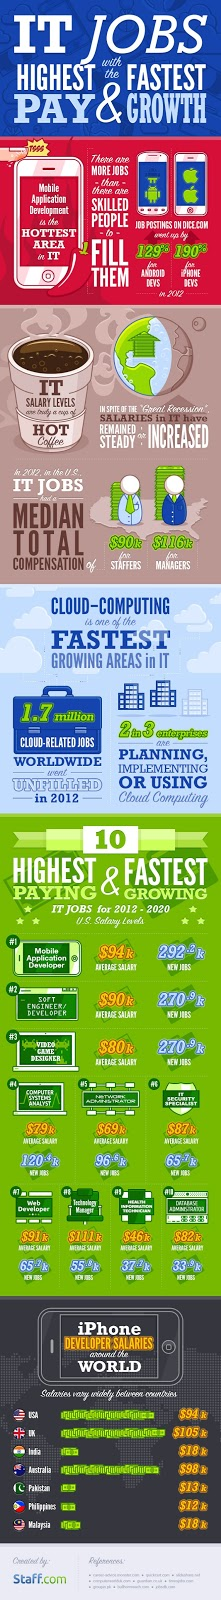 IT Jobs Salaries and Growth